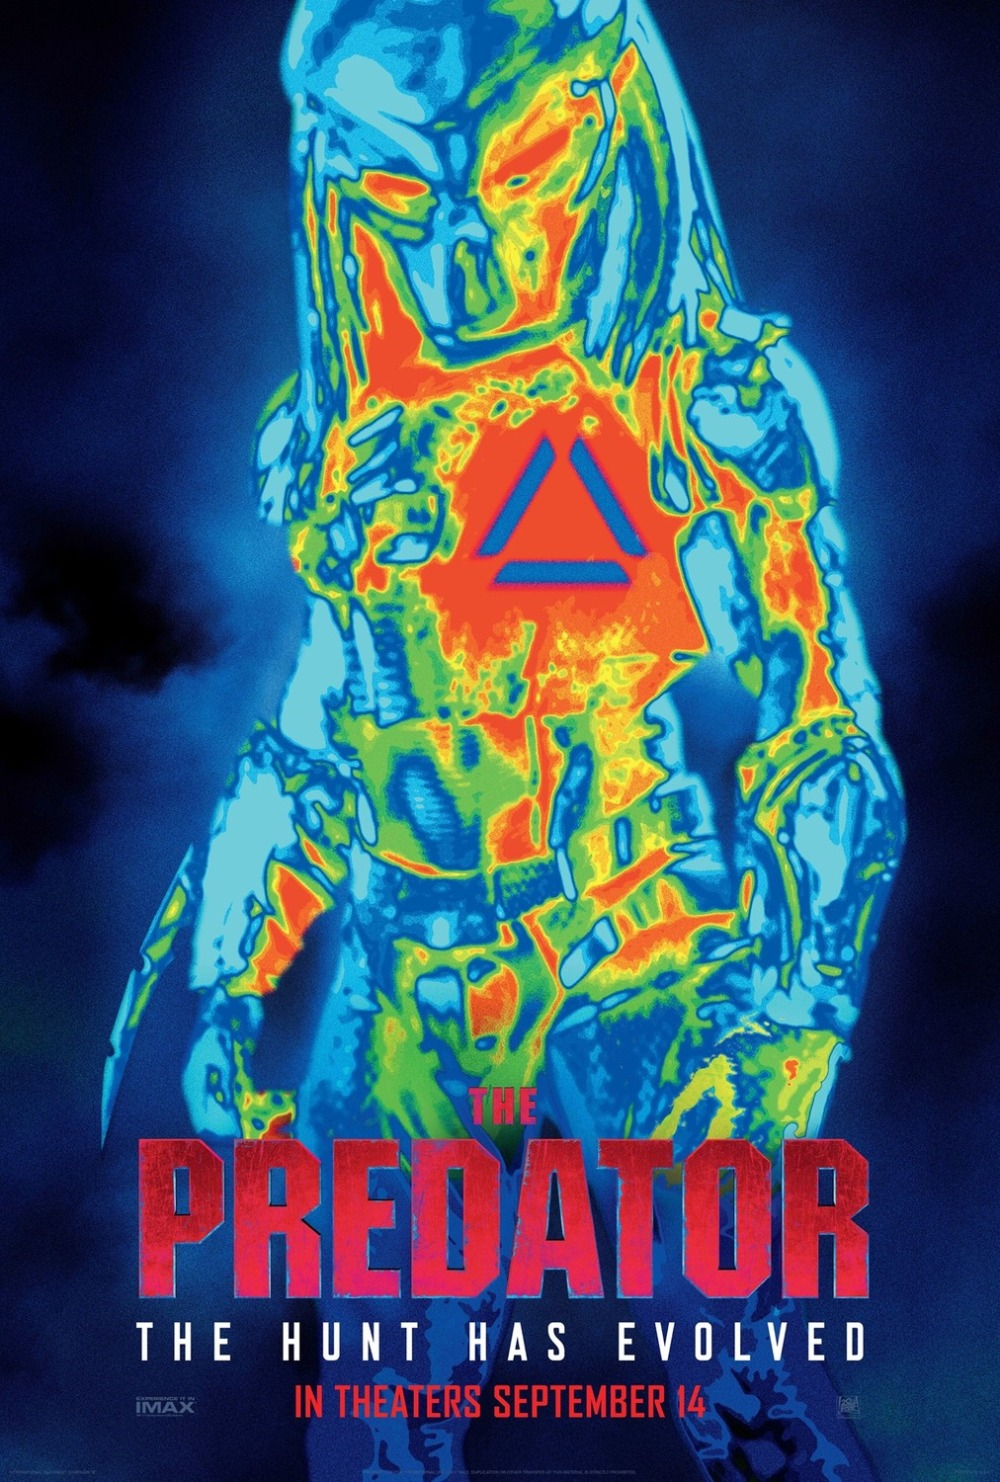 The Predator movie poster version 3